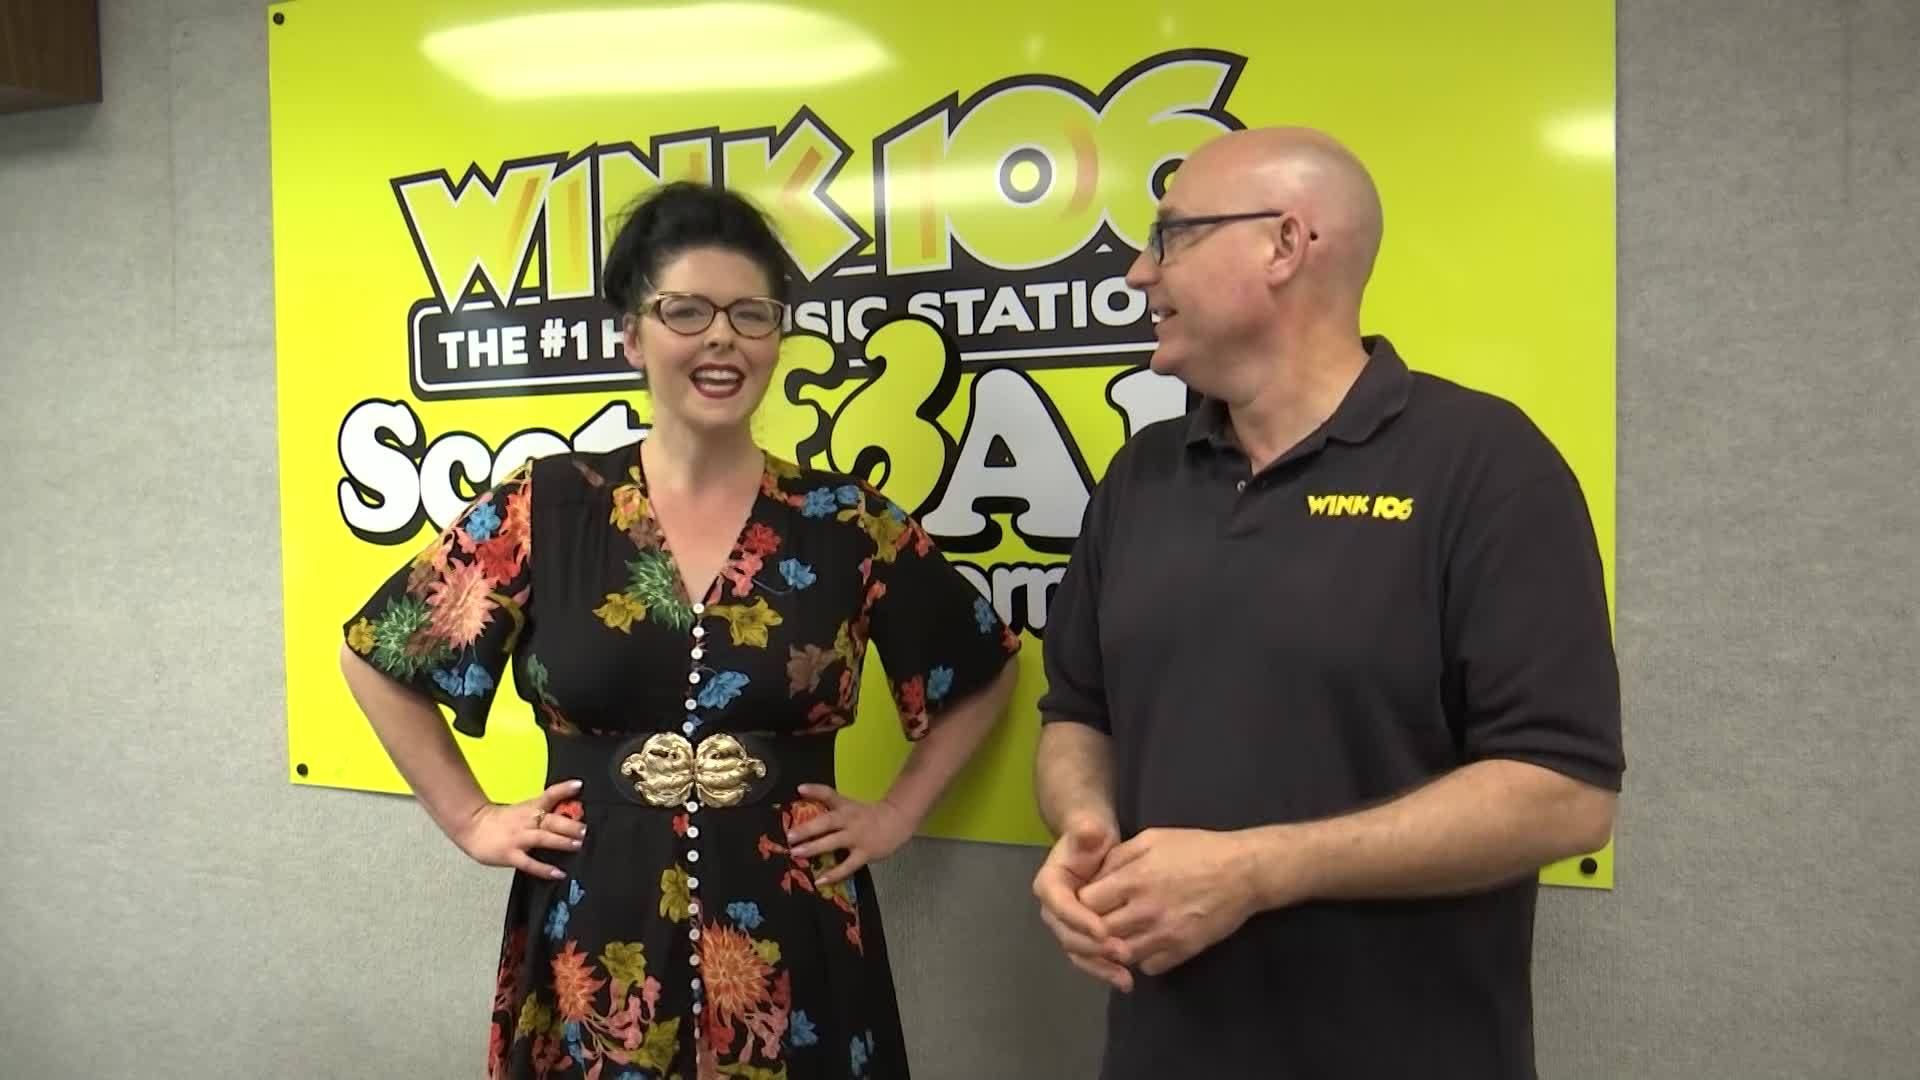 The_Buzz_with_Scott_and_Ally_web_extra_5_20190621081401